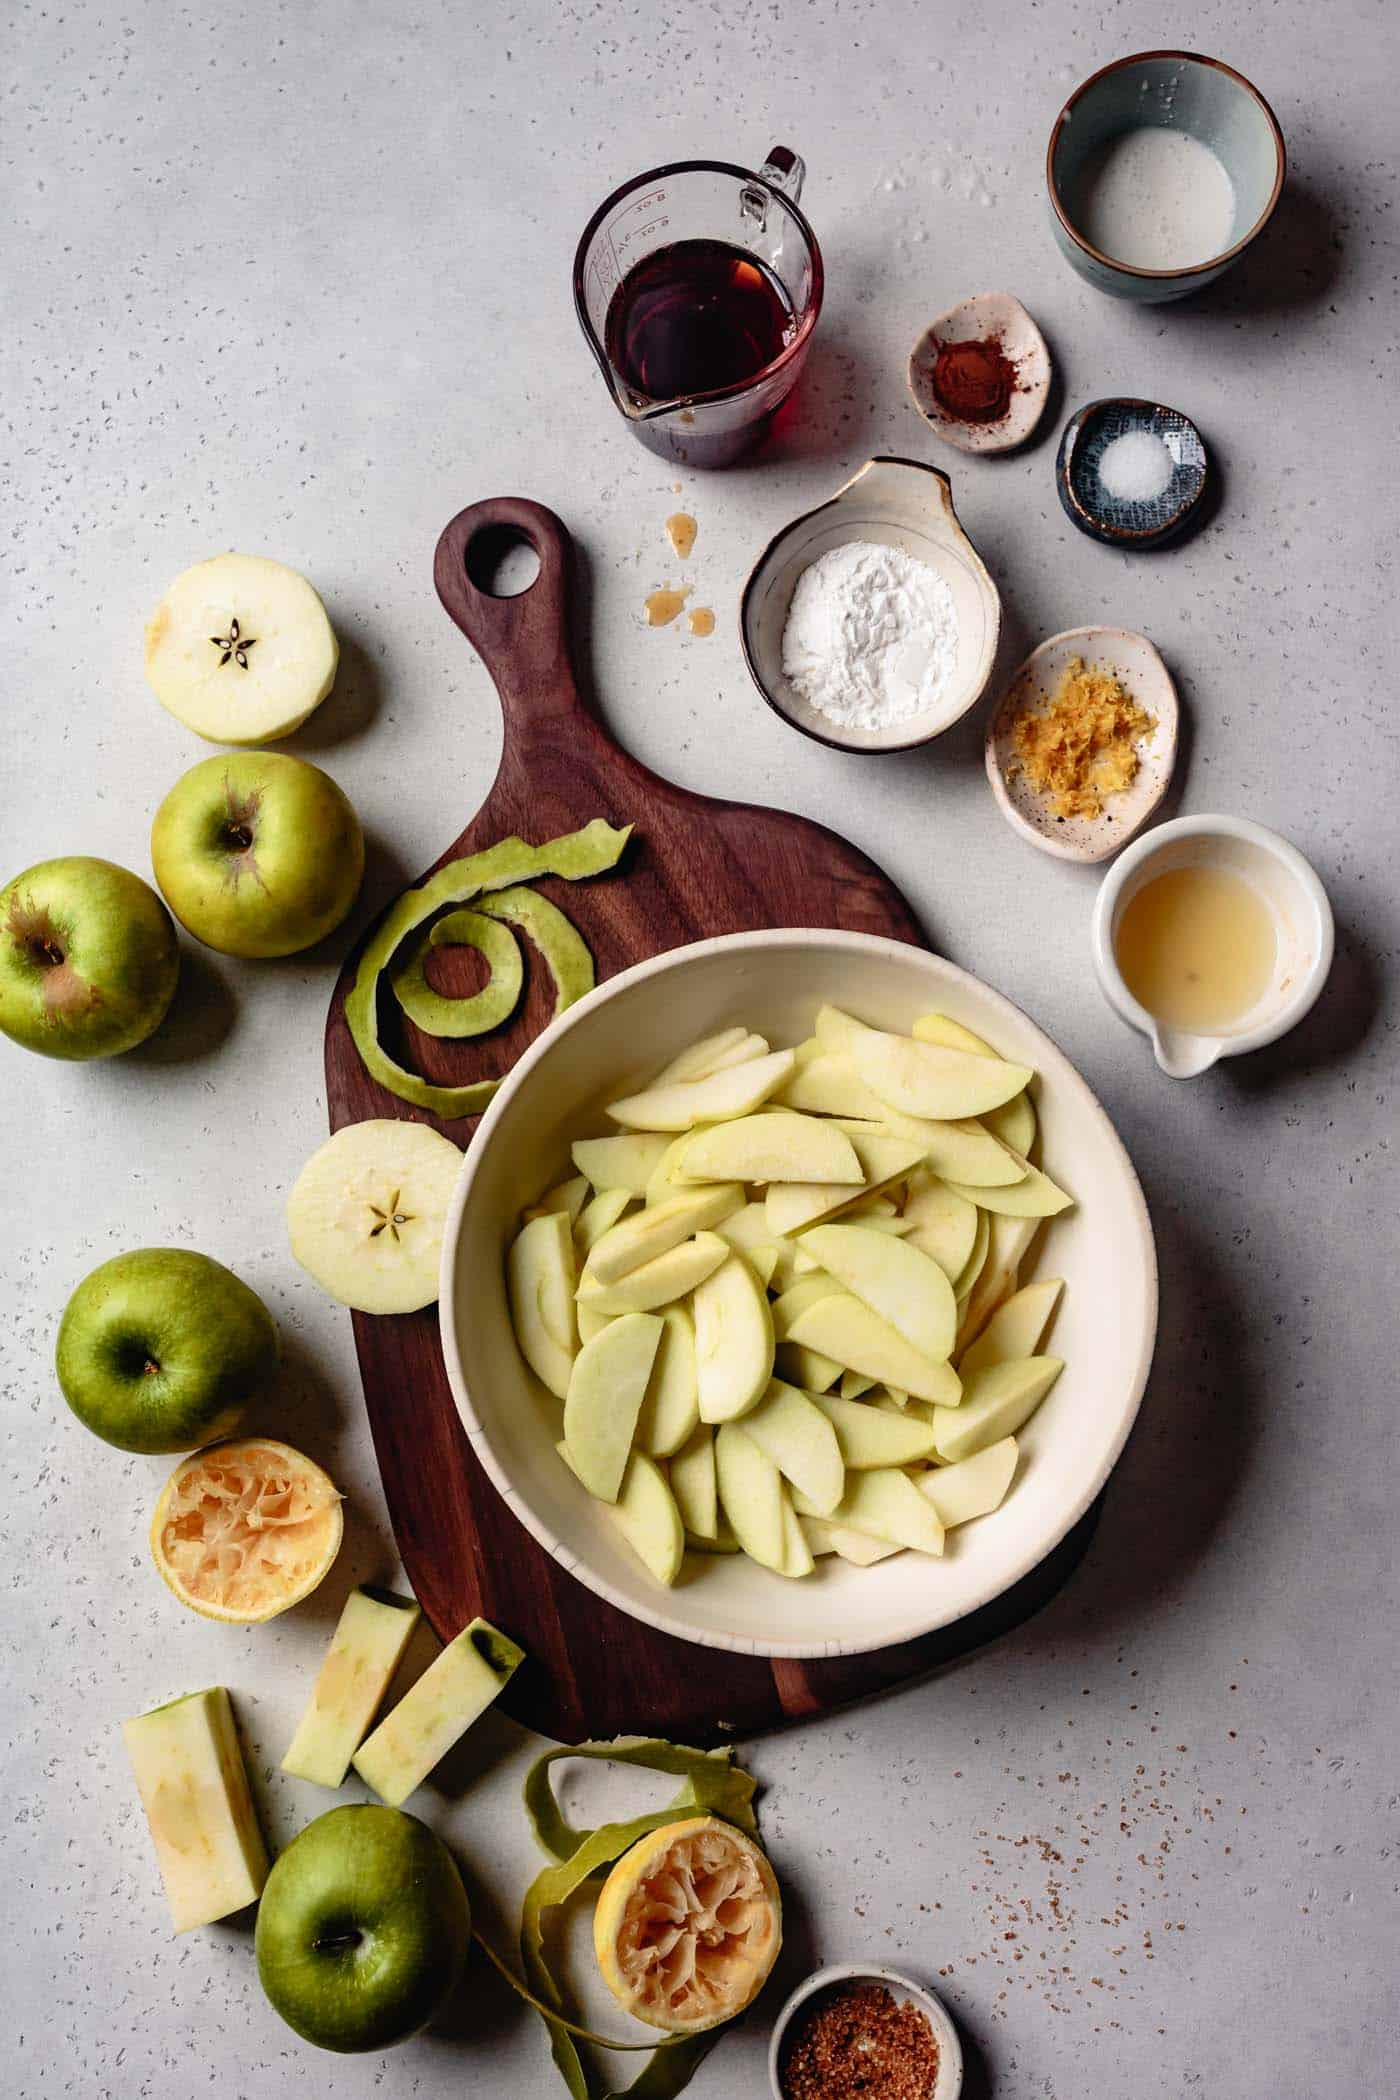 ingredients for homemade apple pie recipe